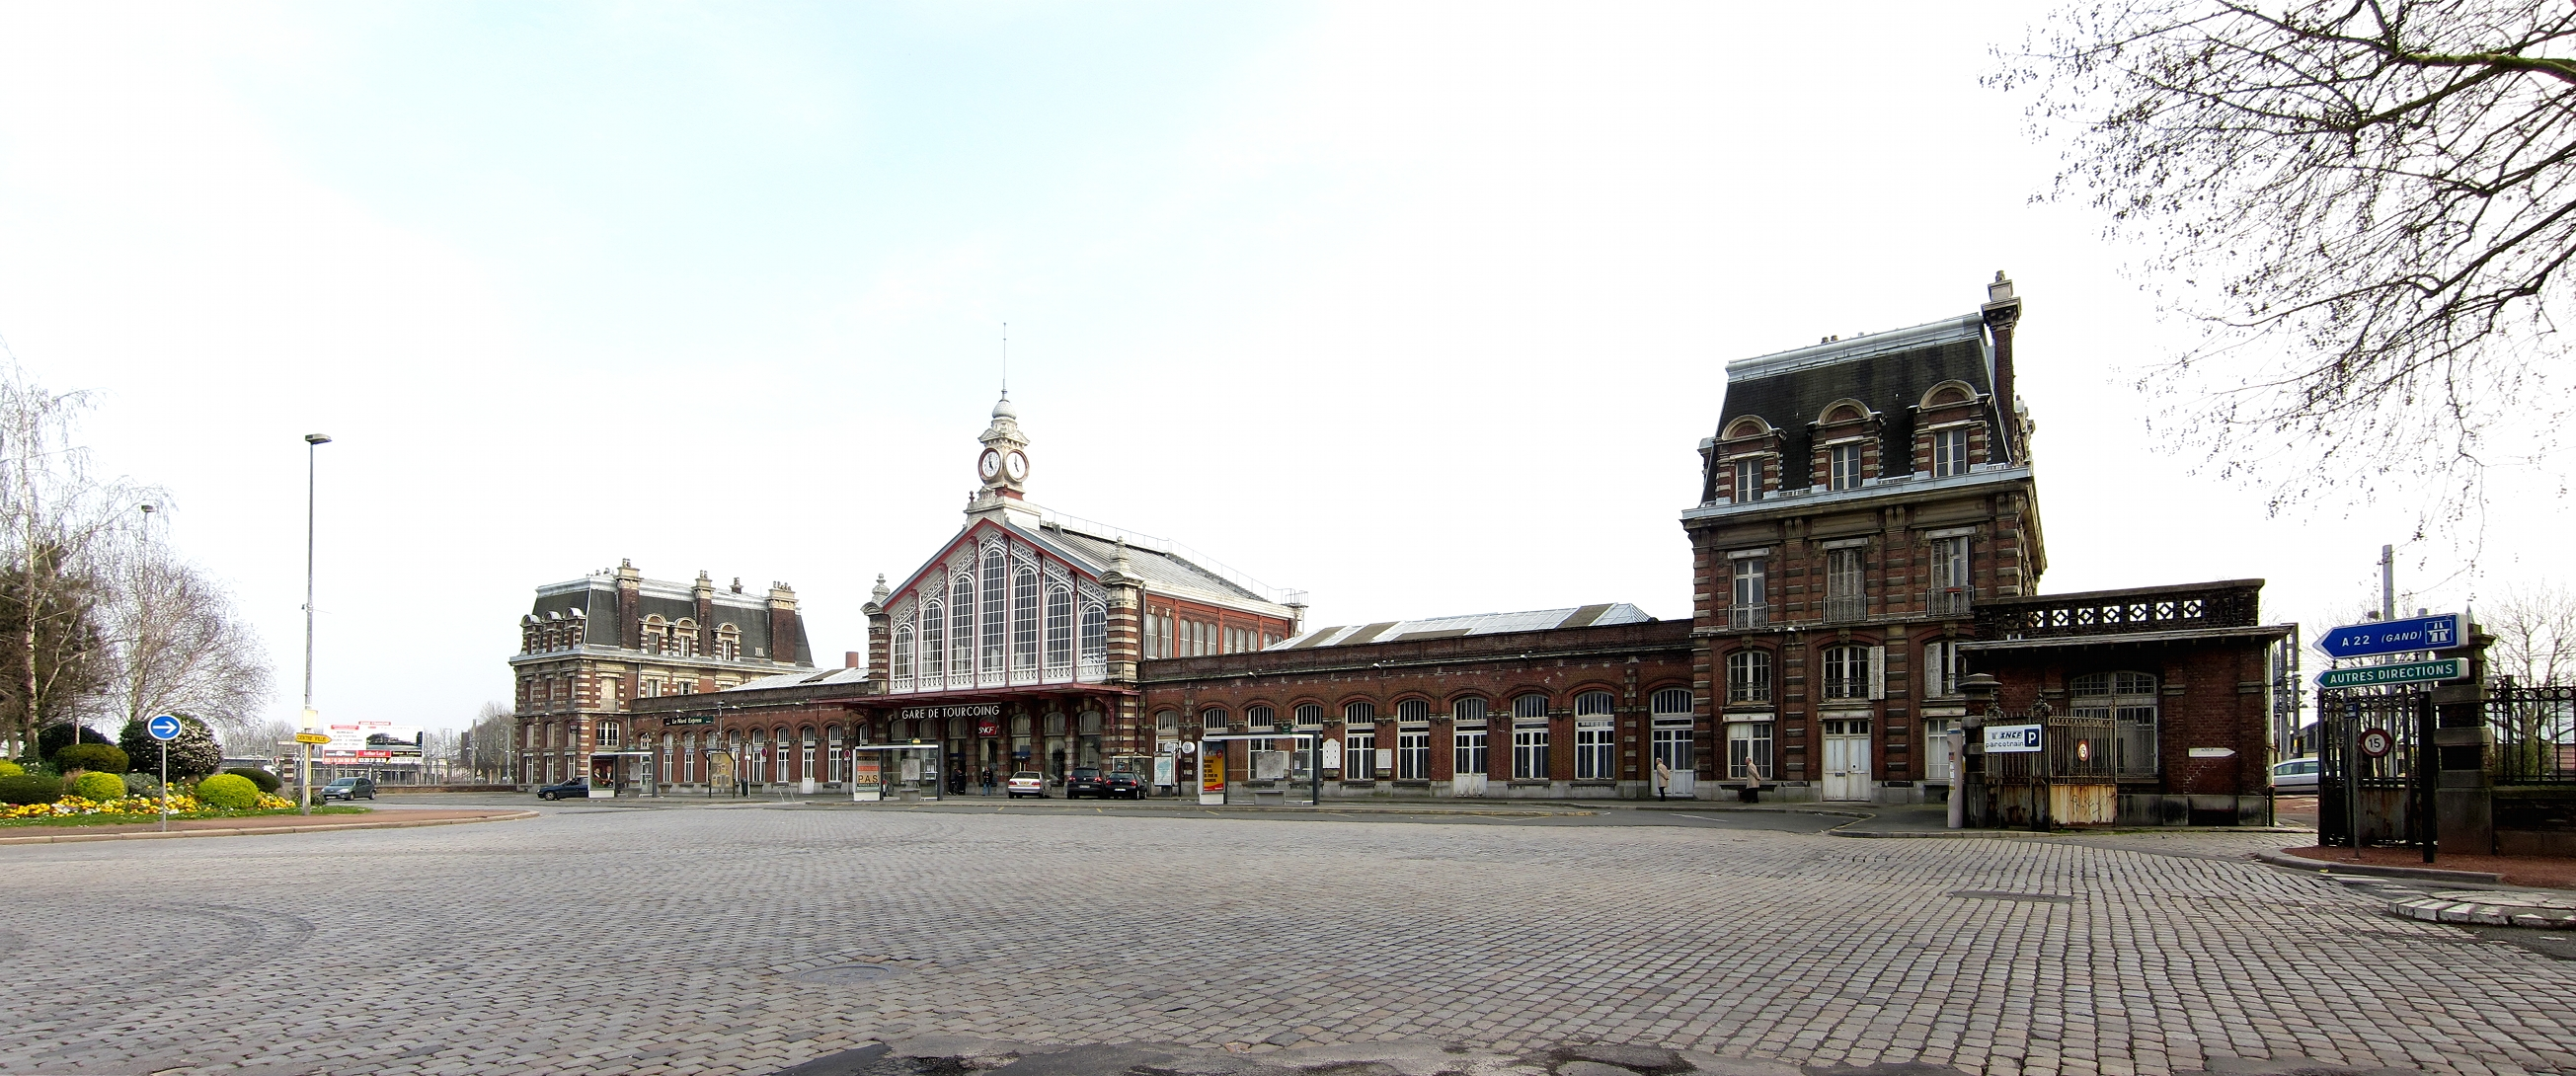 Tourcoing France  city photos : Visiting Tourcoing, France and its railroad station: a French national ...